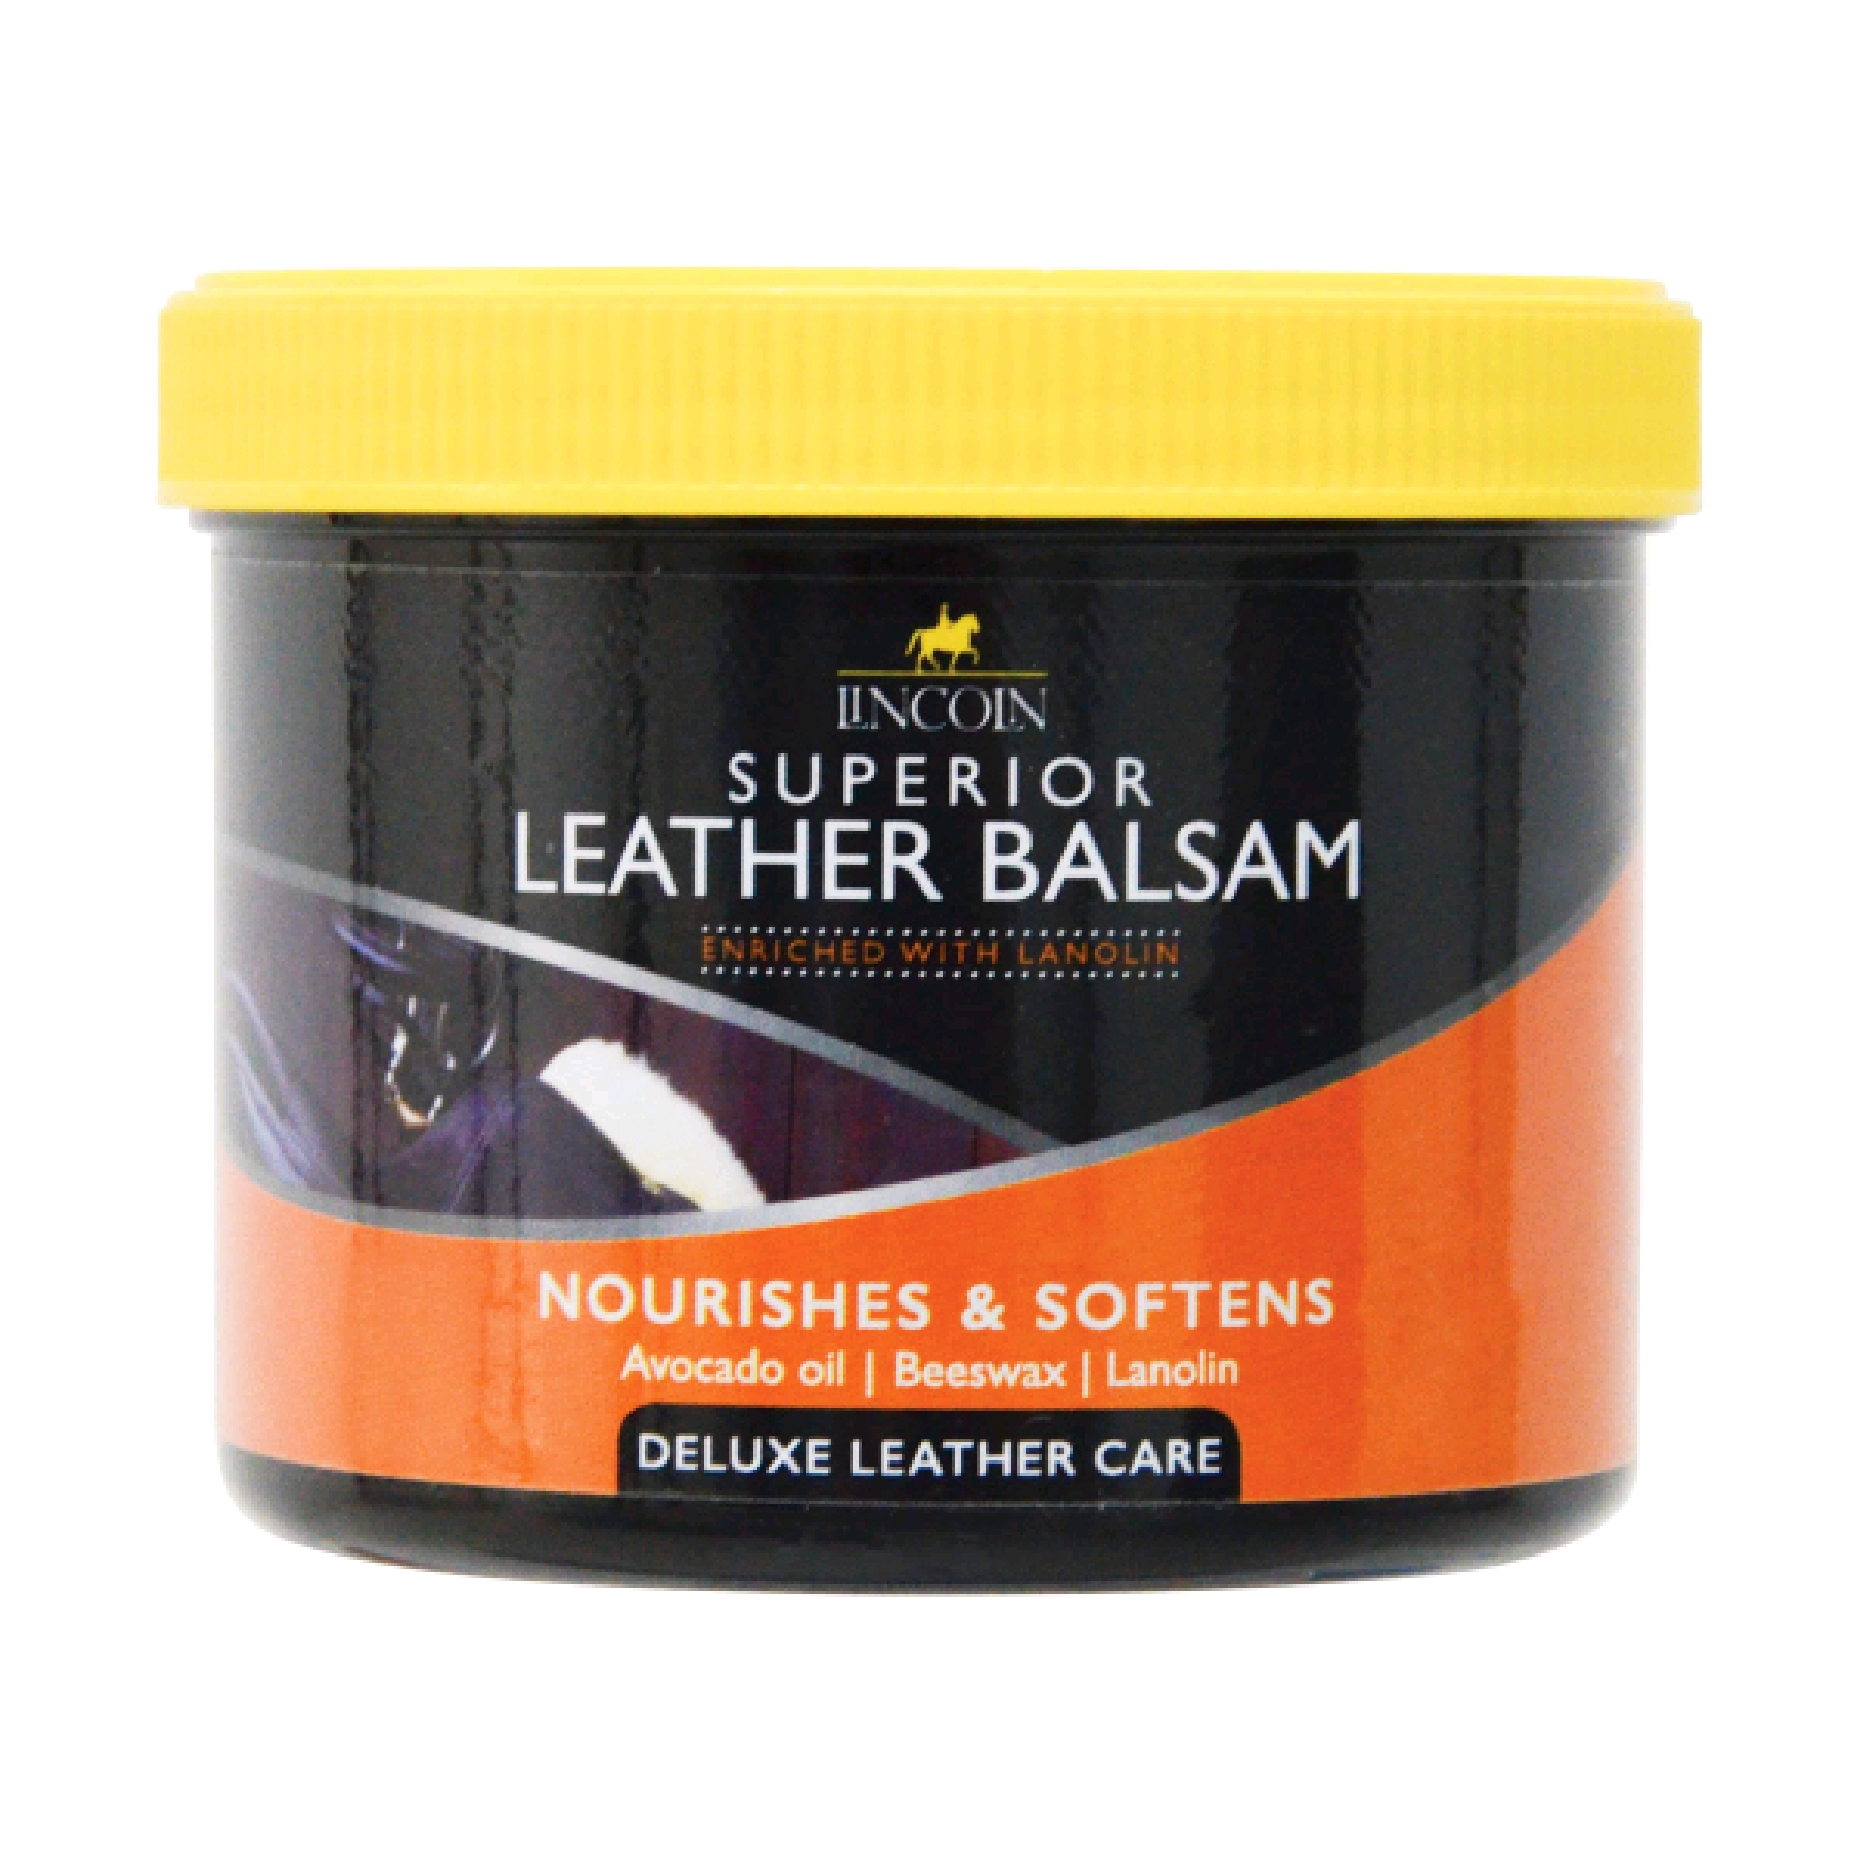 Lincoln Leather Balsam